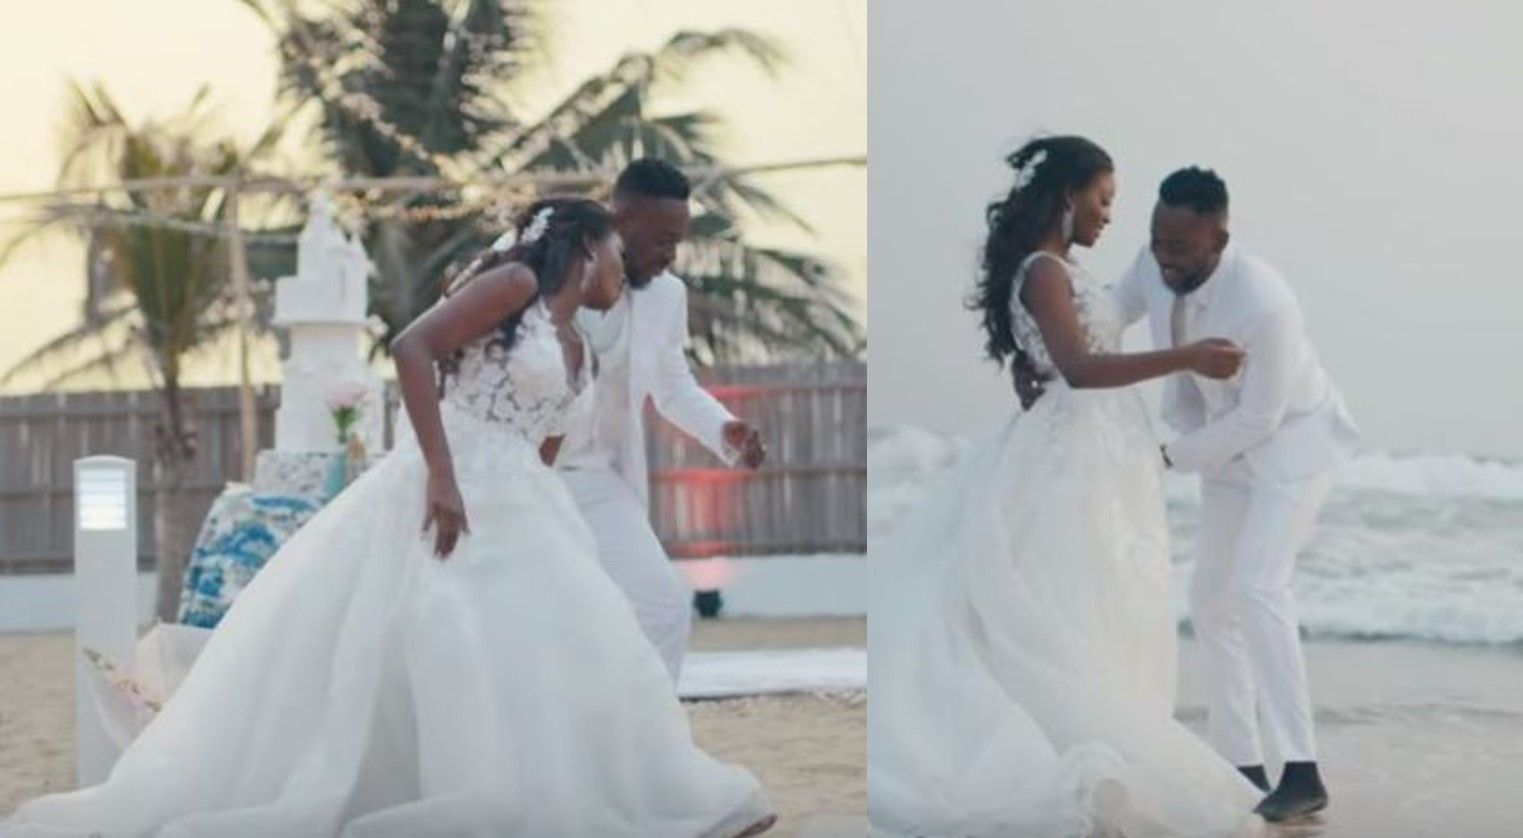 Singer Adekunle Gold reveals why his wedding with Simi was private